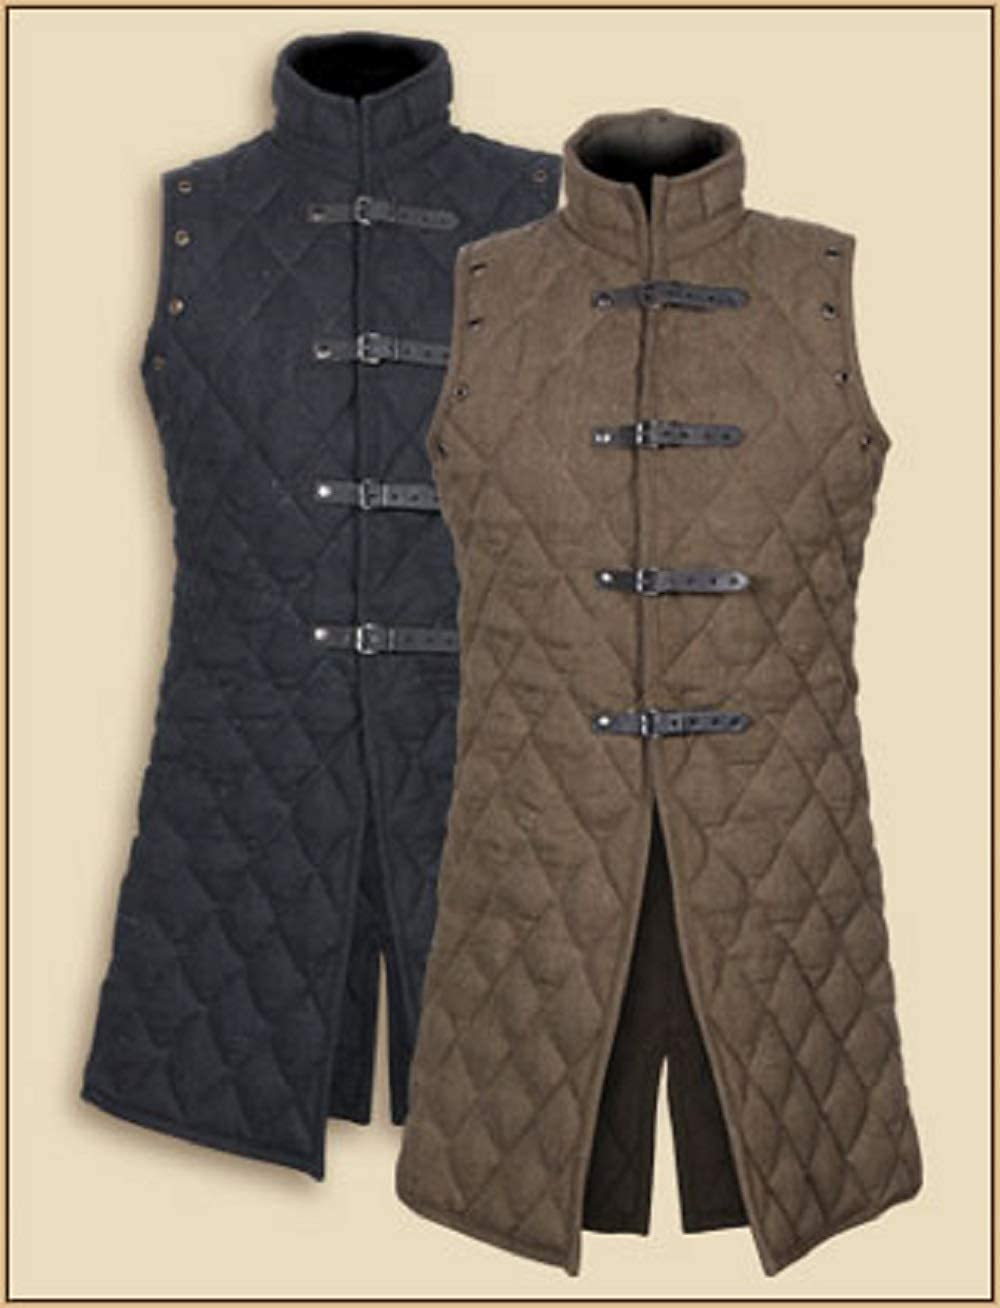 Medieval Thick Padded Full Length Gambeson Coat Aketon Jacket Armor